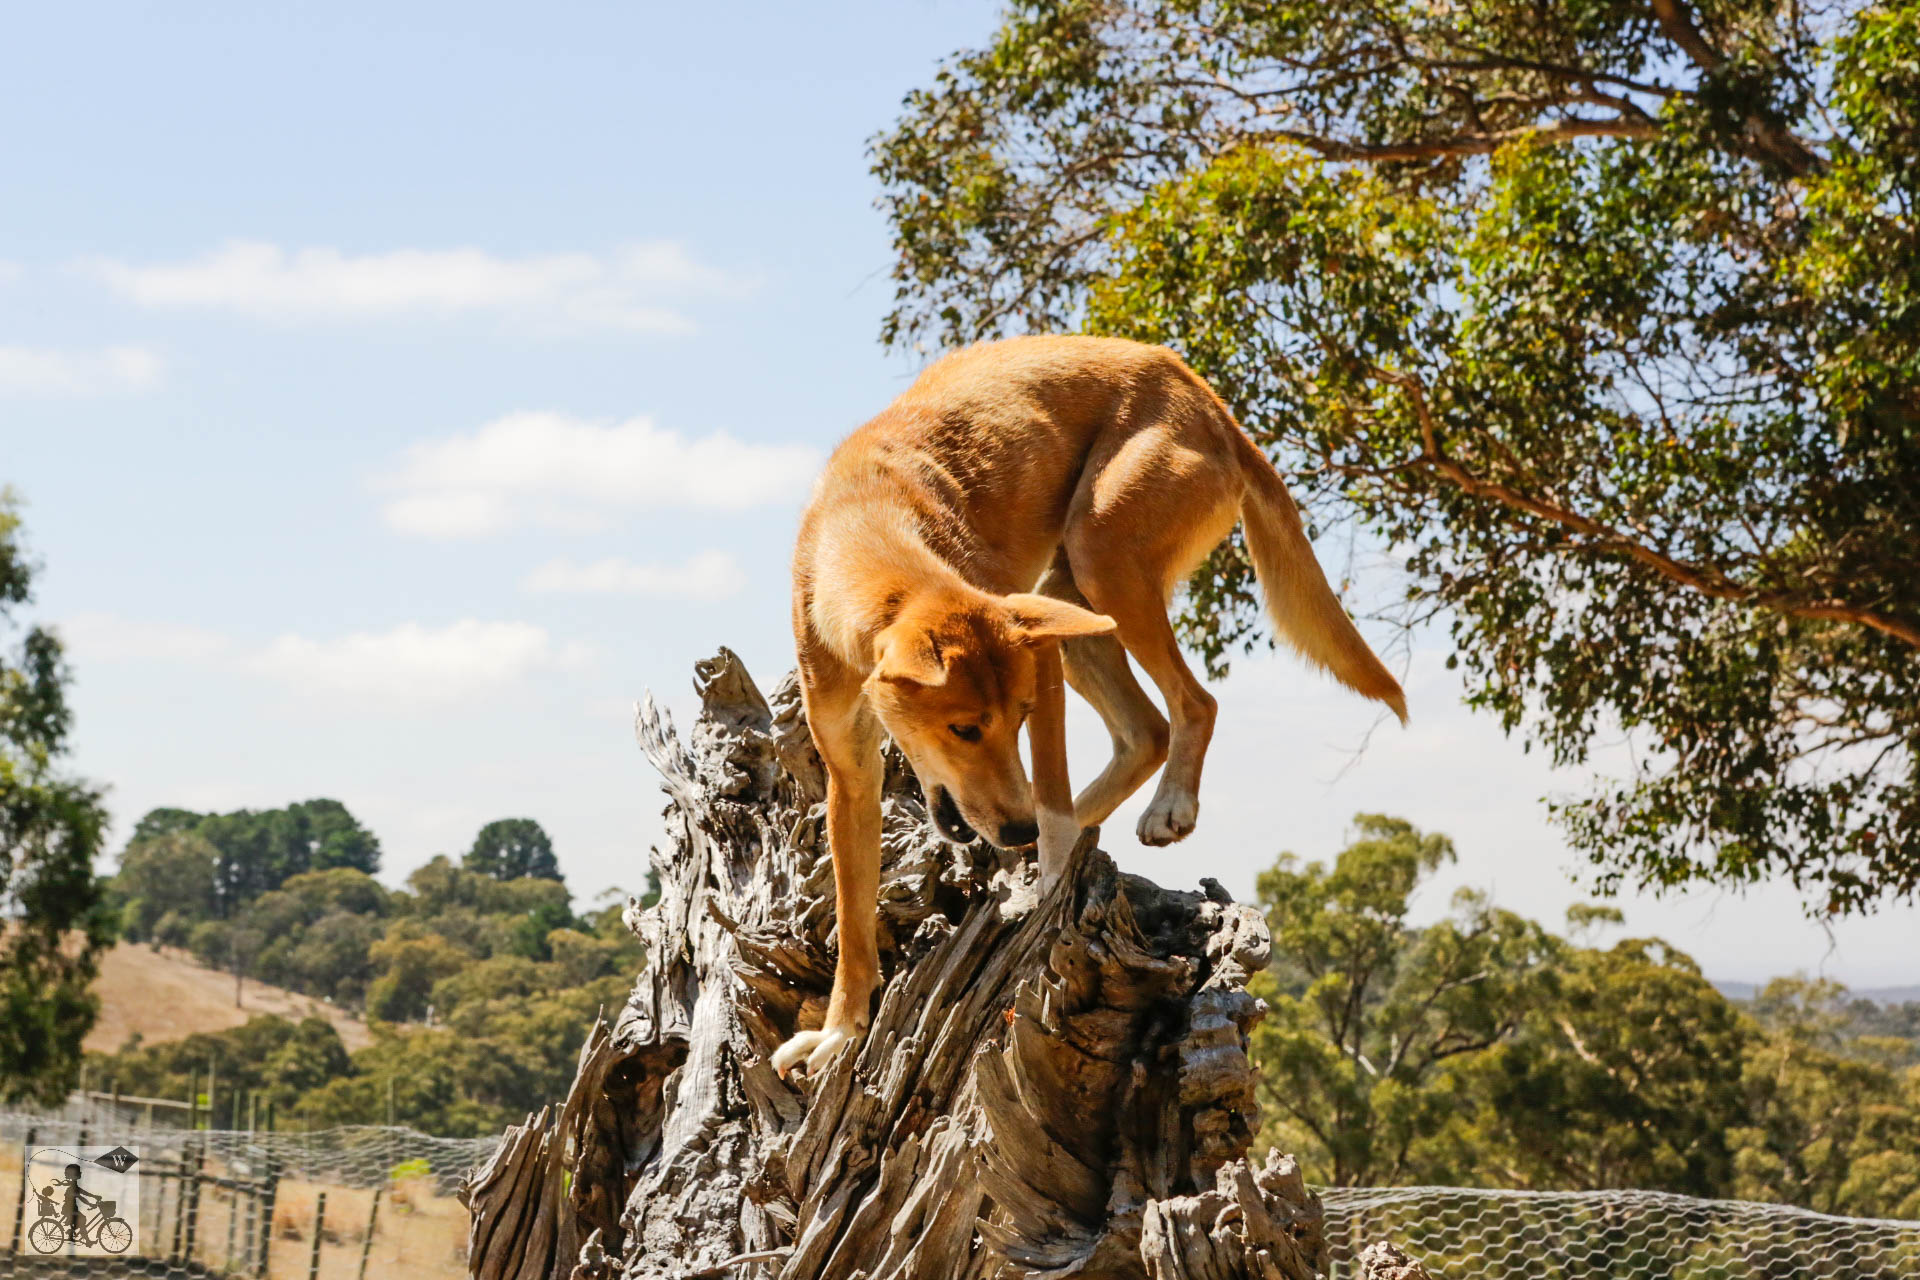 Mamma Knows West - Dingo Discovery Sanctuary (34 of 51).jpg